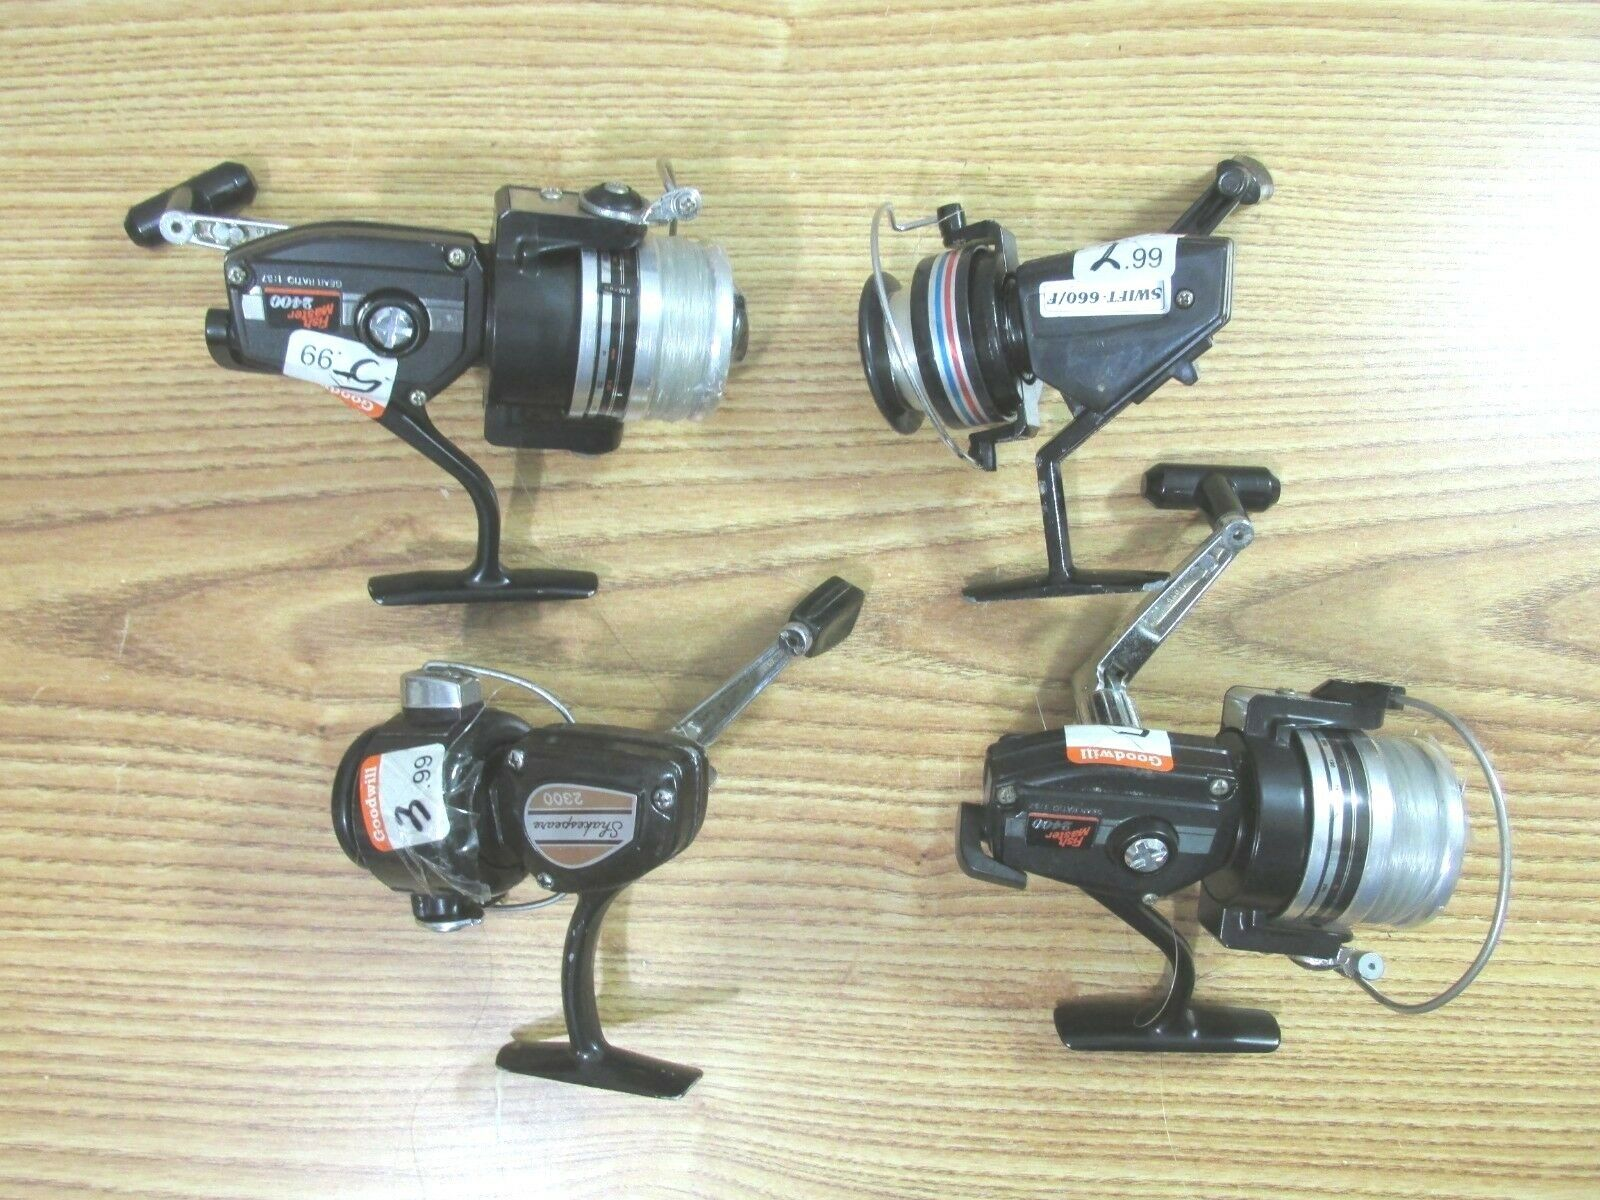 LOT OF 4 FISHING REELS SHAKESPEARE 2300, 2 FISH MASTER 2400''s, & SWIFT 660 F